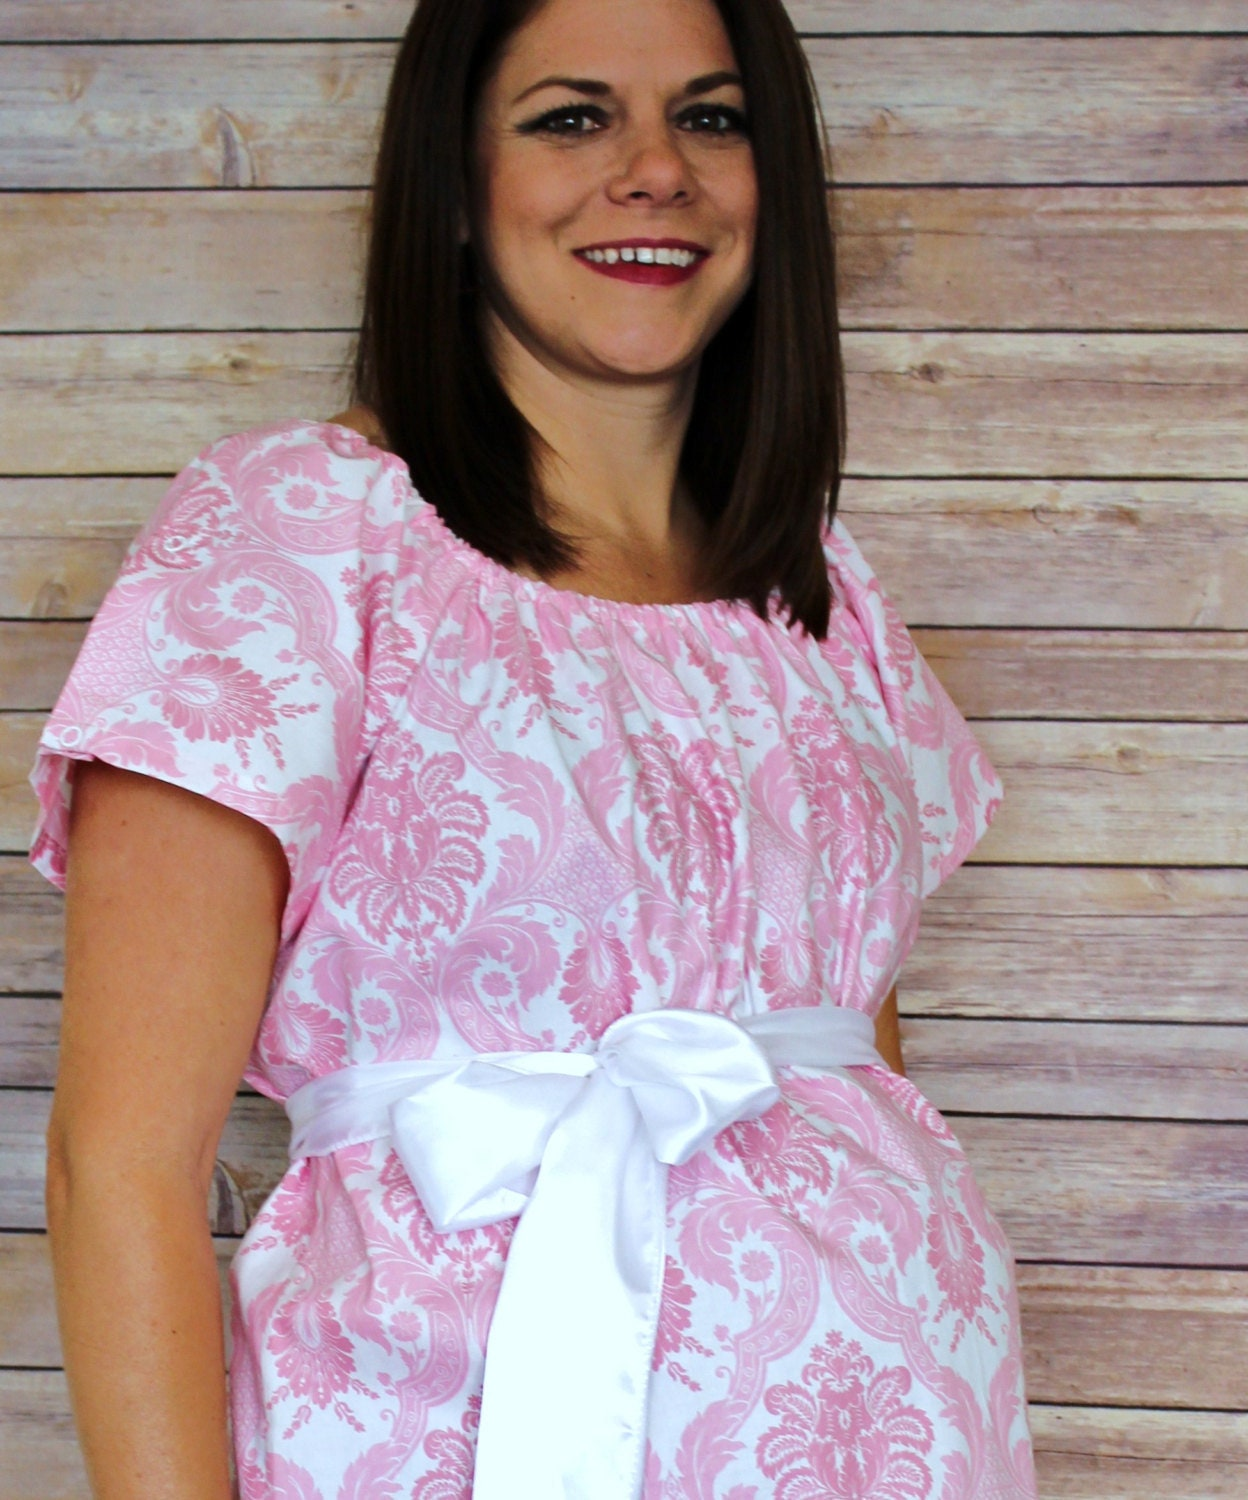 Maternity Hospital Gown in Haddley Baby Pink Damask | Etsy